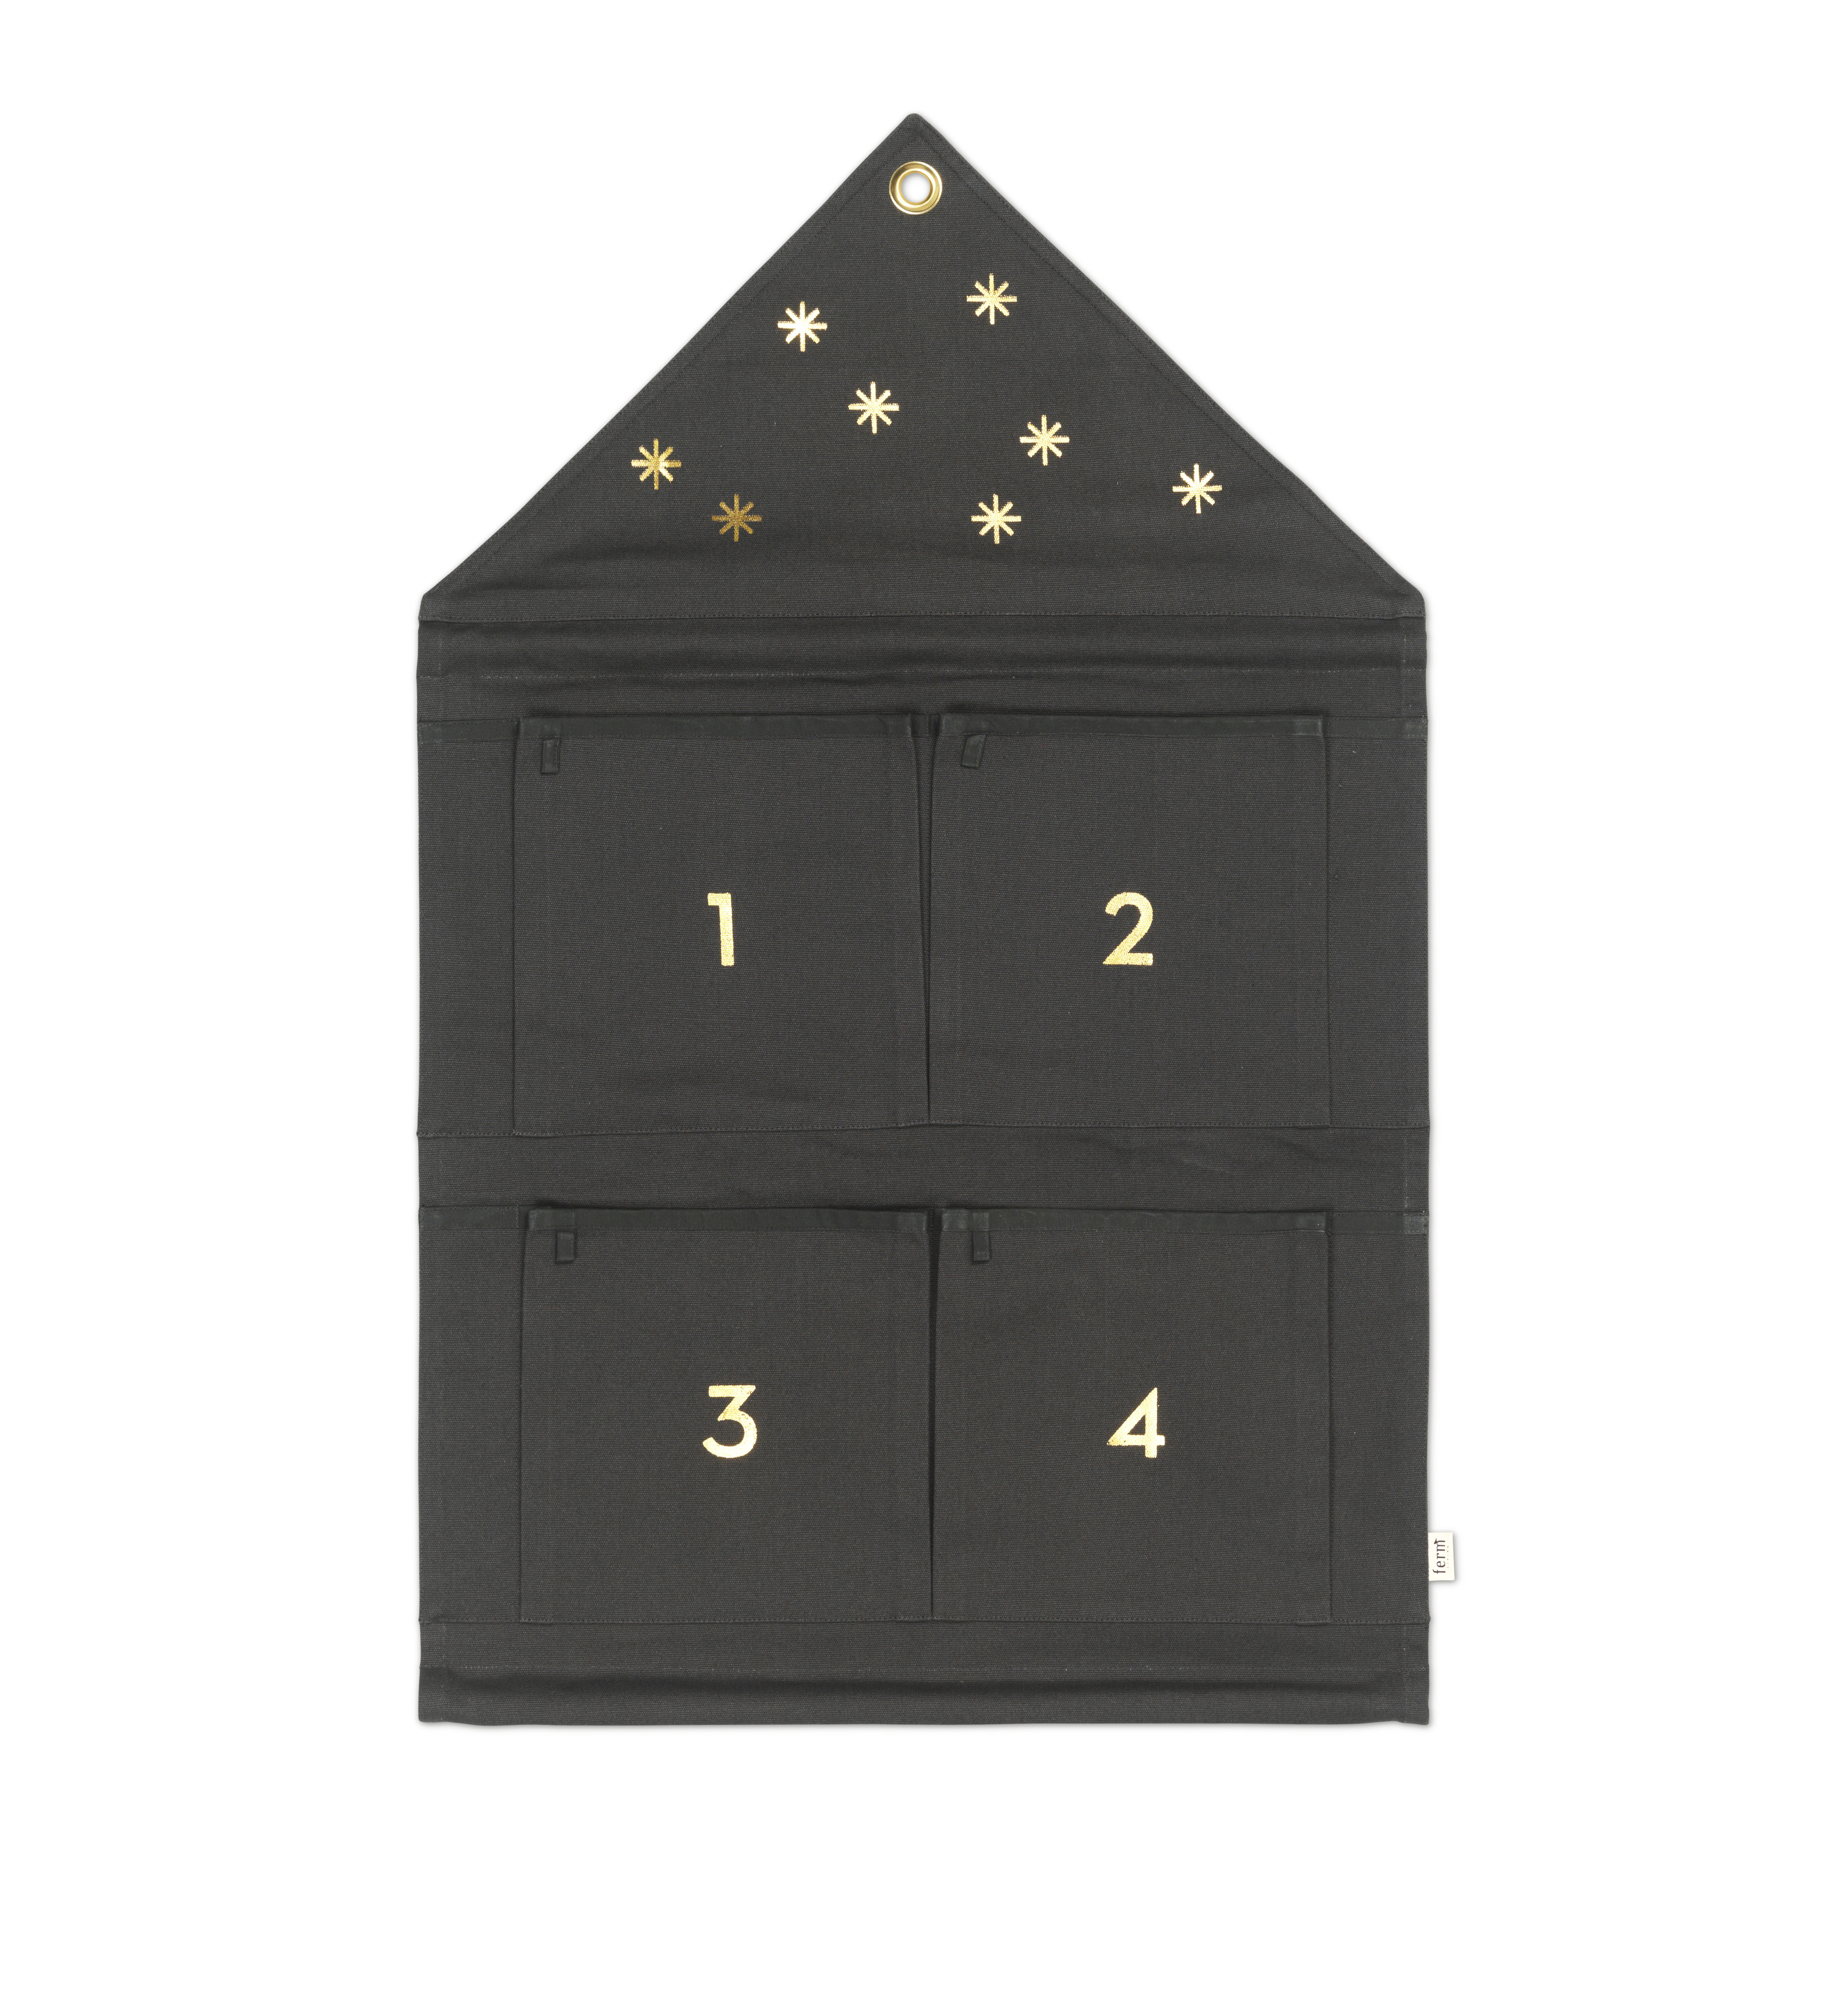 Decoration - Children's Home Accessories - House Advent calendar - / 4 Sundays by Ferm Living - Fir tree green & gold - Cotton